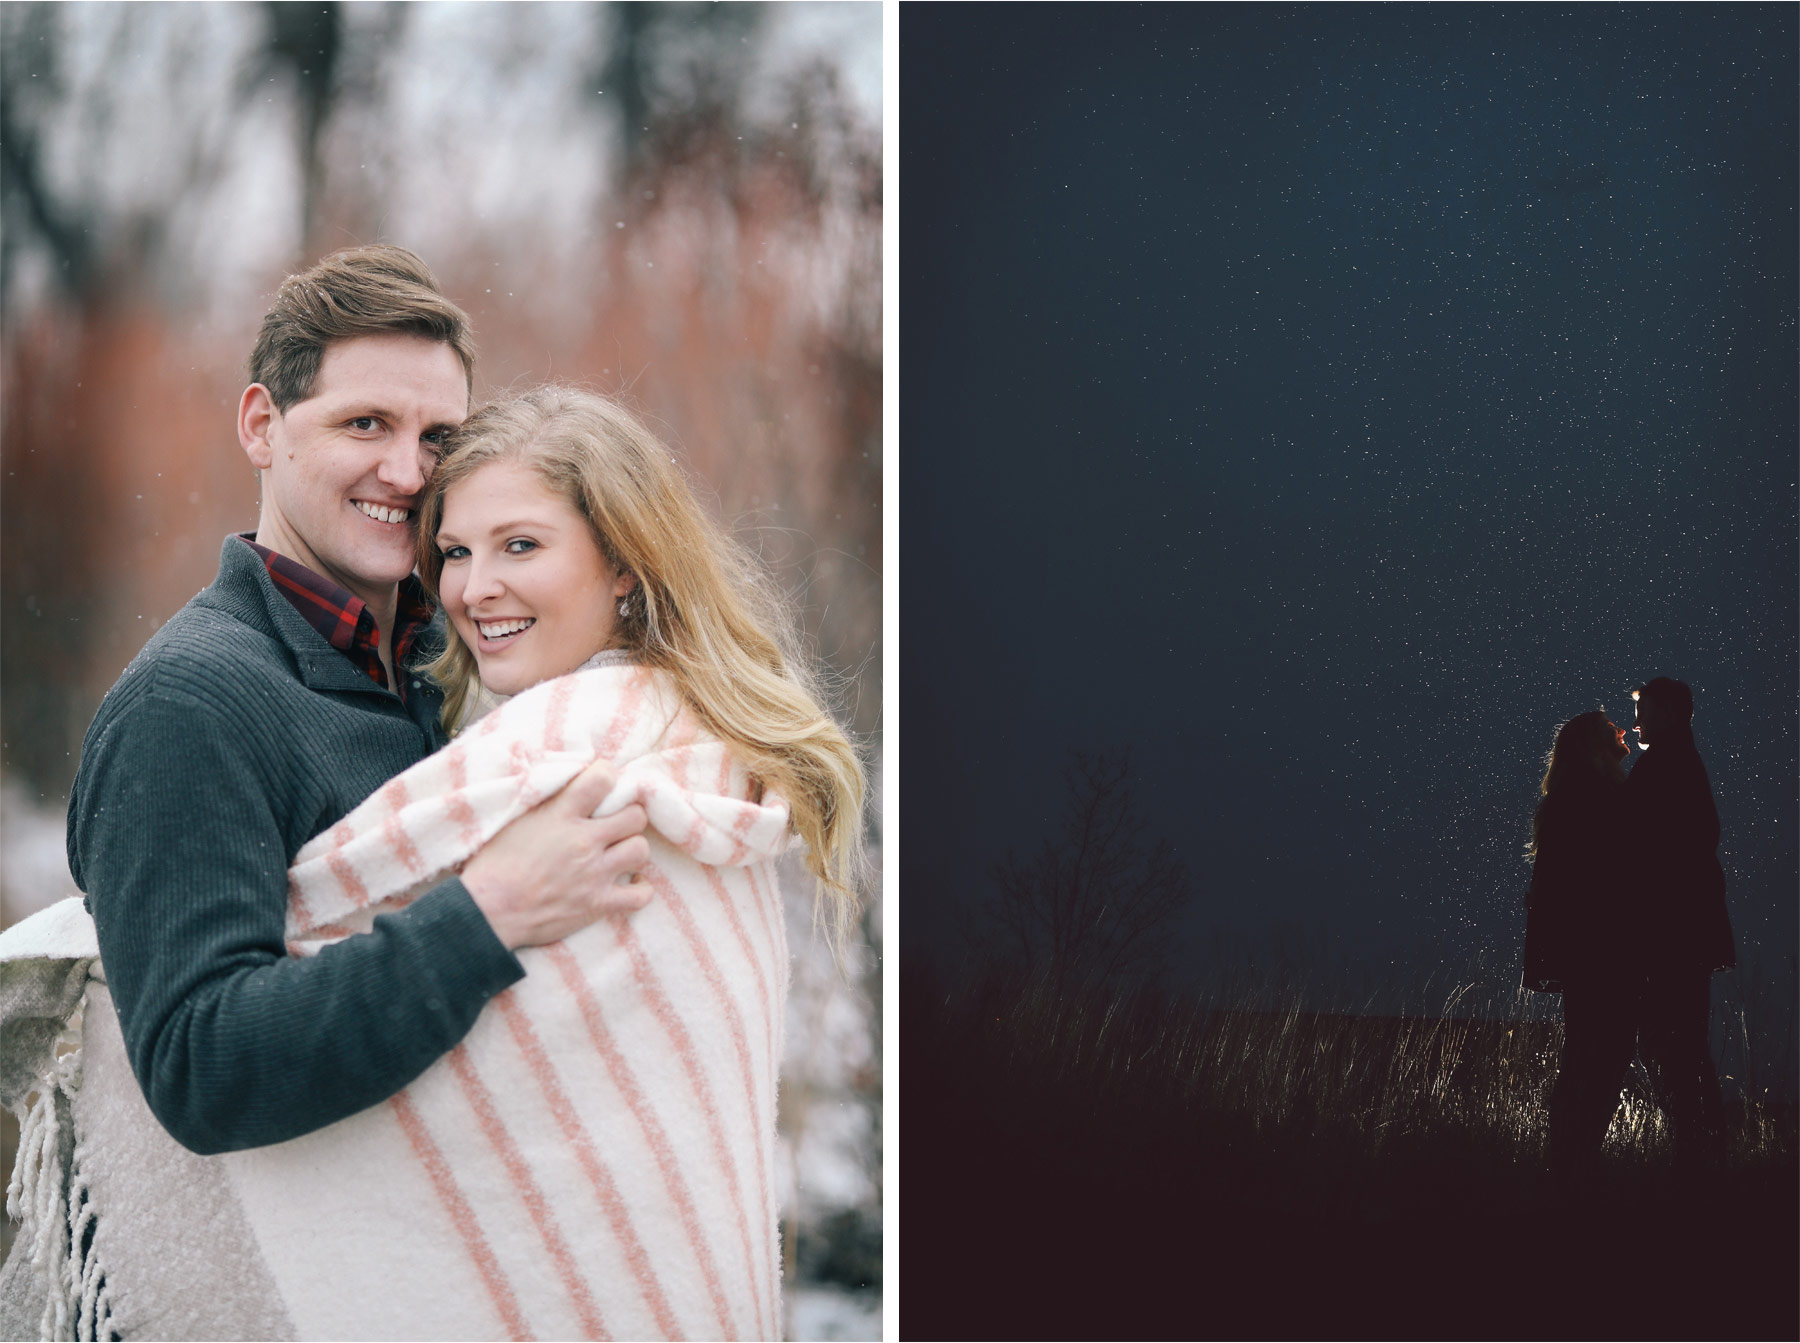 07-Vick-Photography-Engagement-Session-Winter-Outdoor-Couple-Blanket-Veronica-and-Tyler.jpg